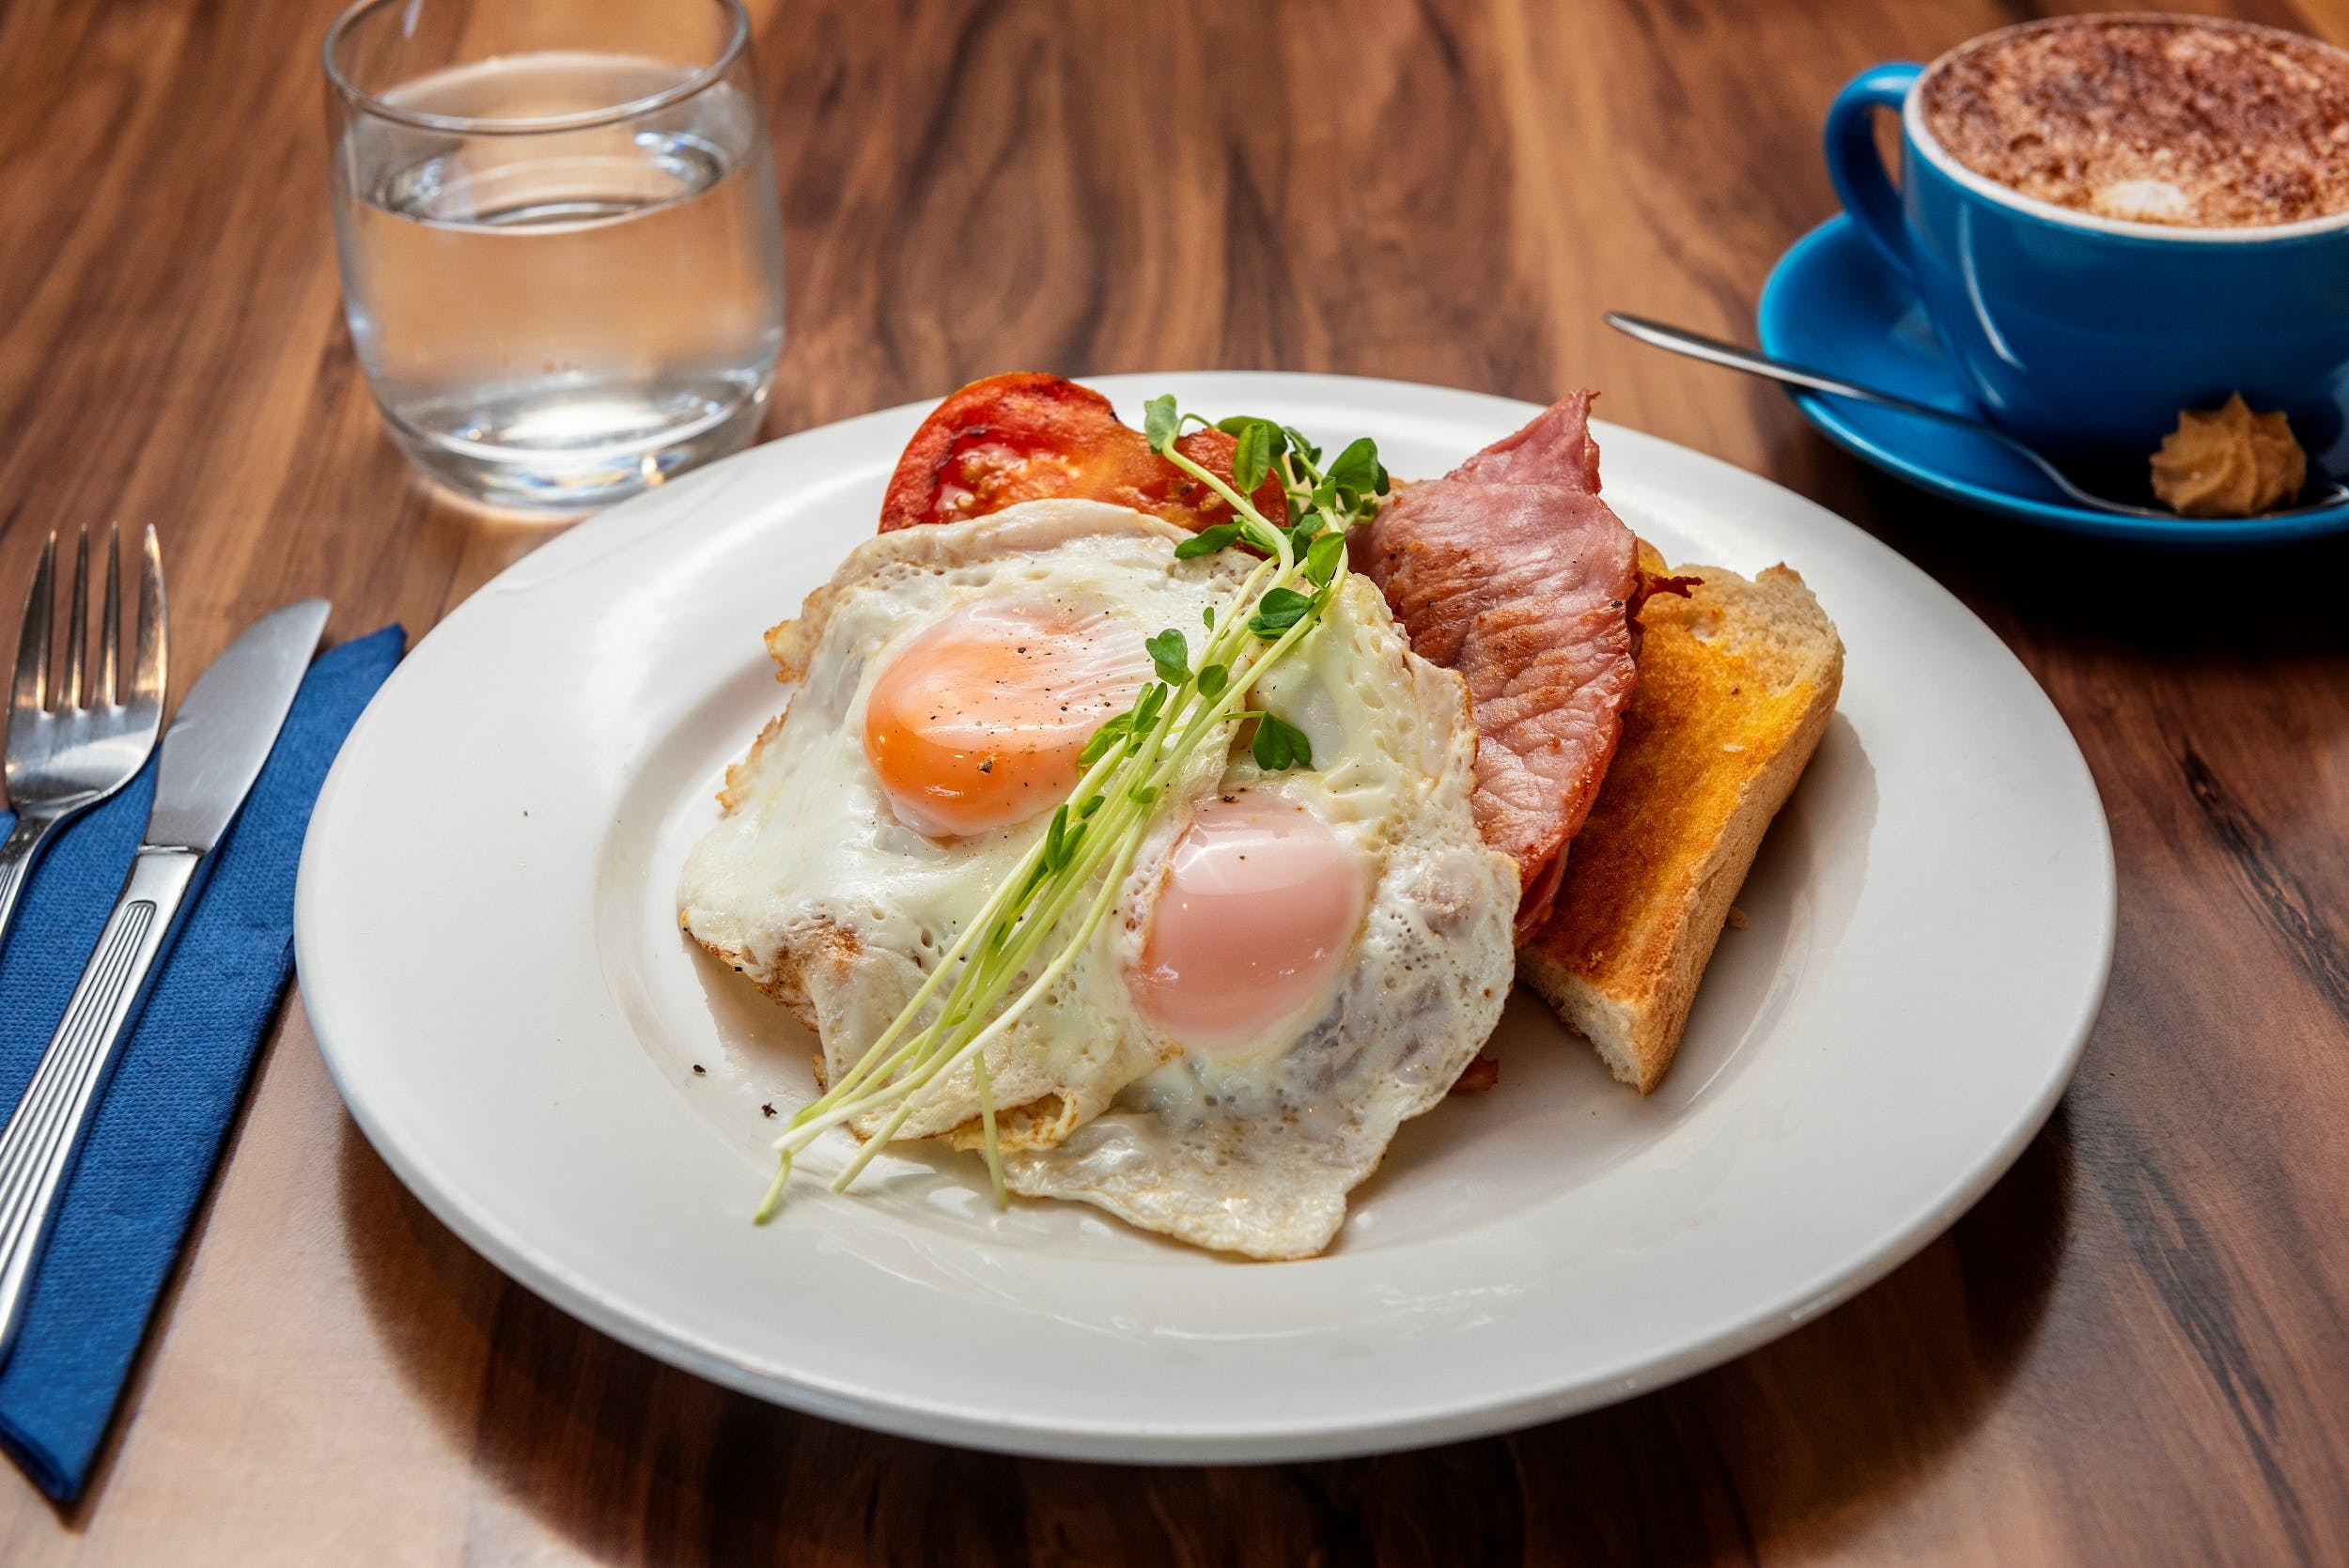 Breakfast can be served in the Seaside Restaurant or delivered to your room